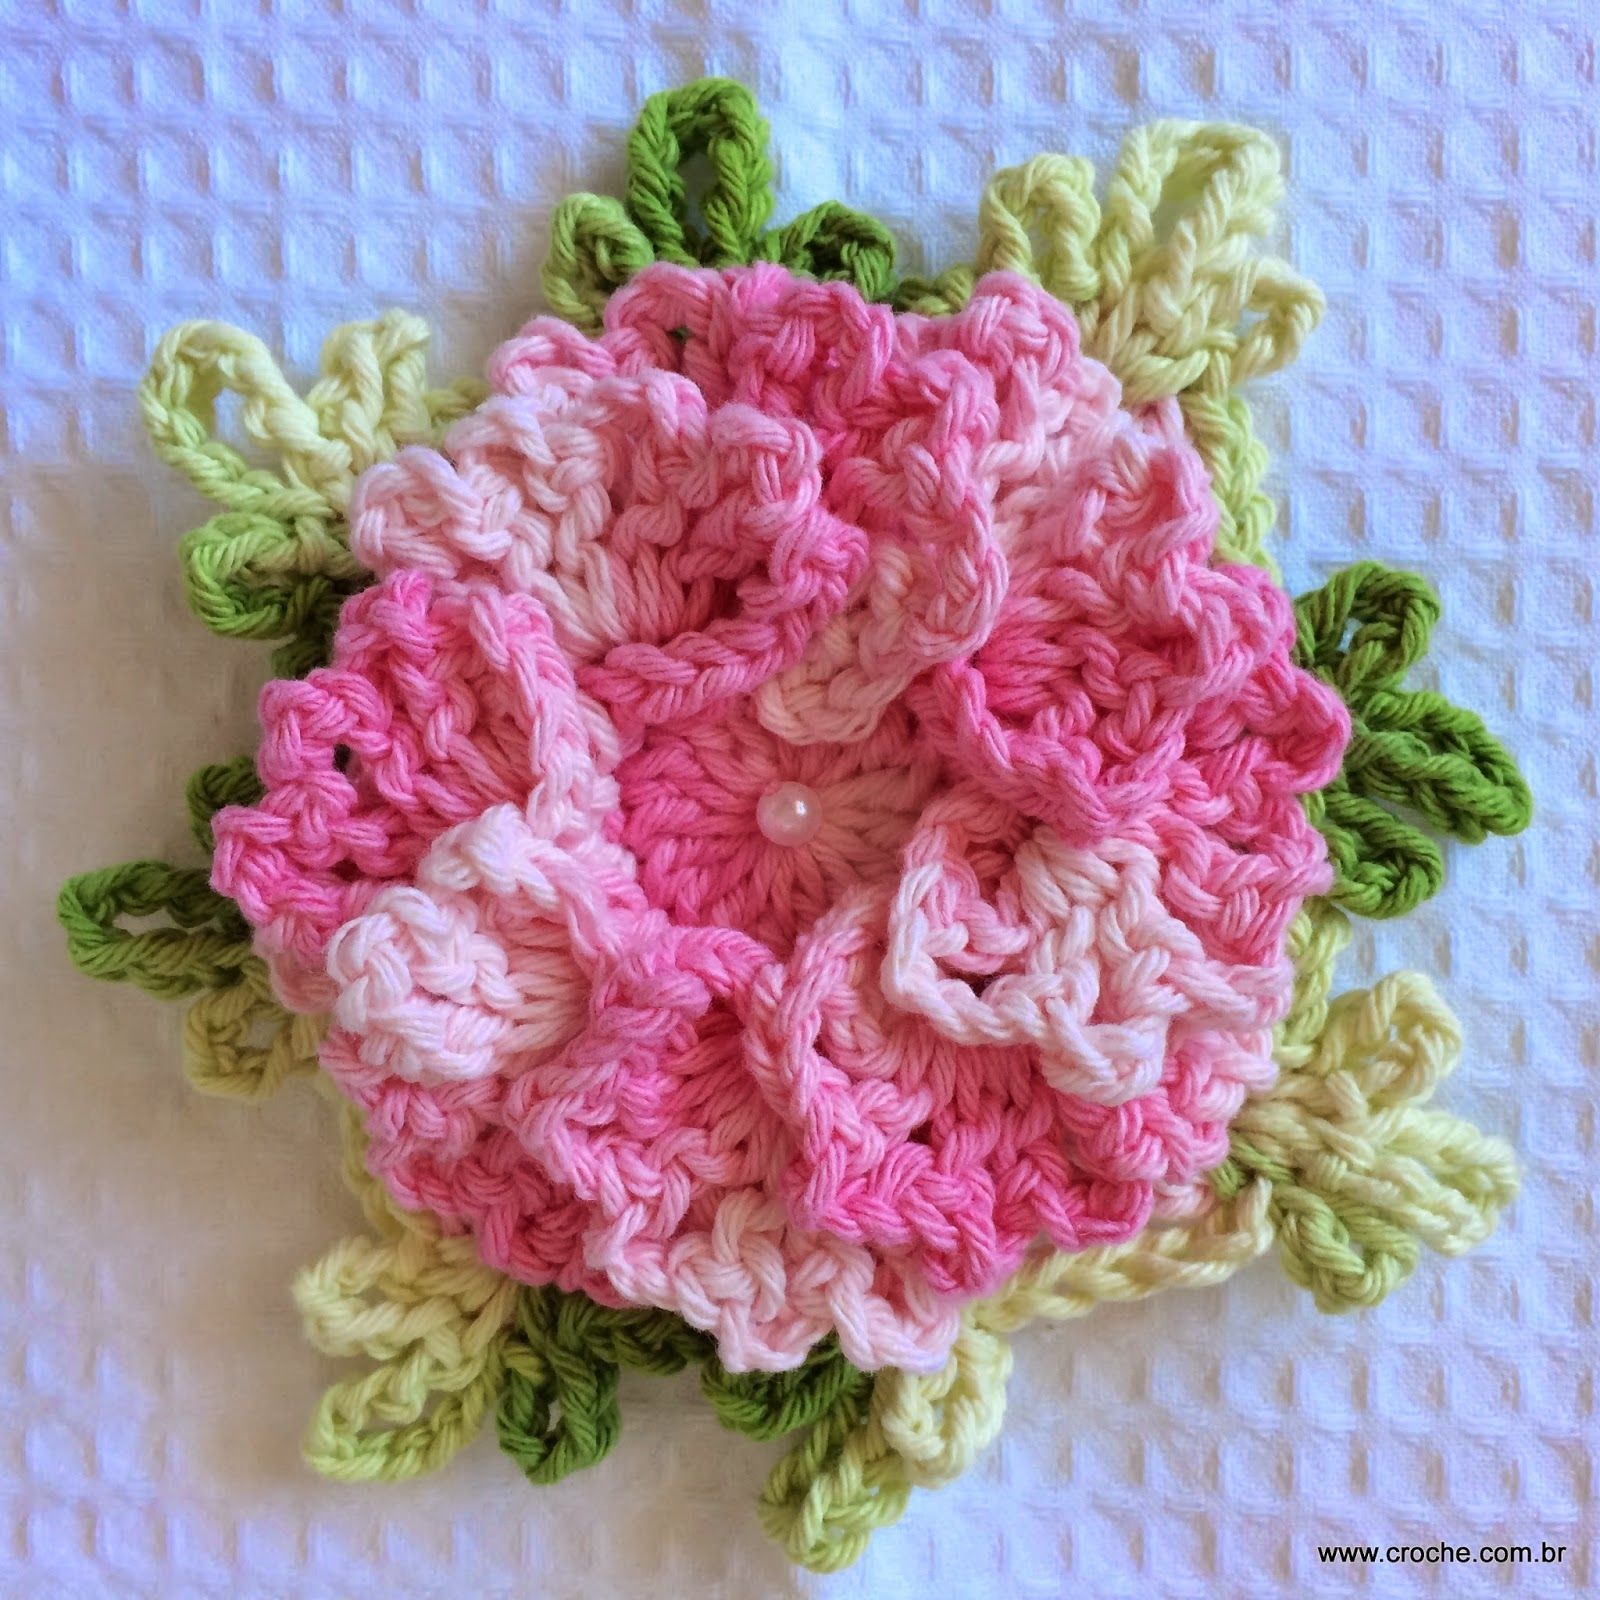 Explore Crocheted Flowers, Crochet Patterns, and more!